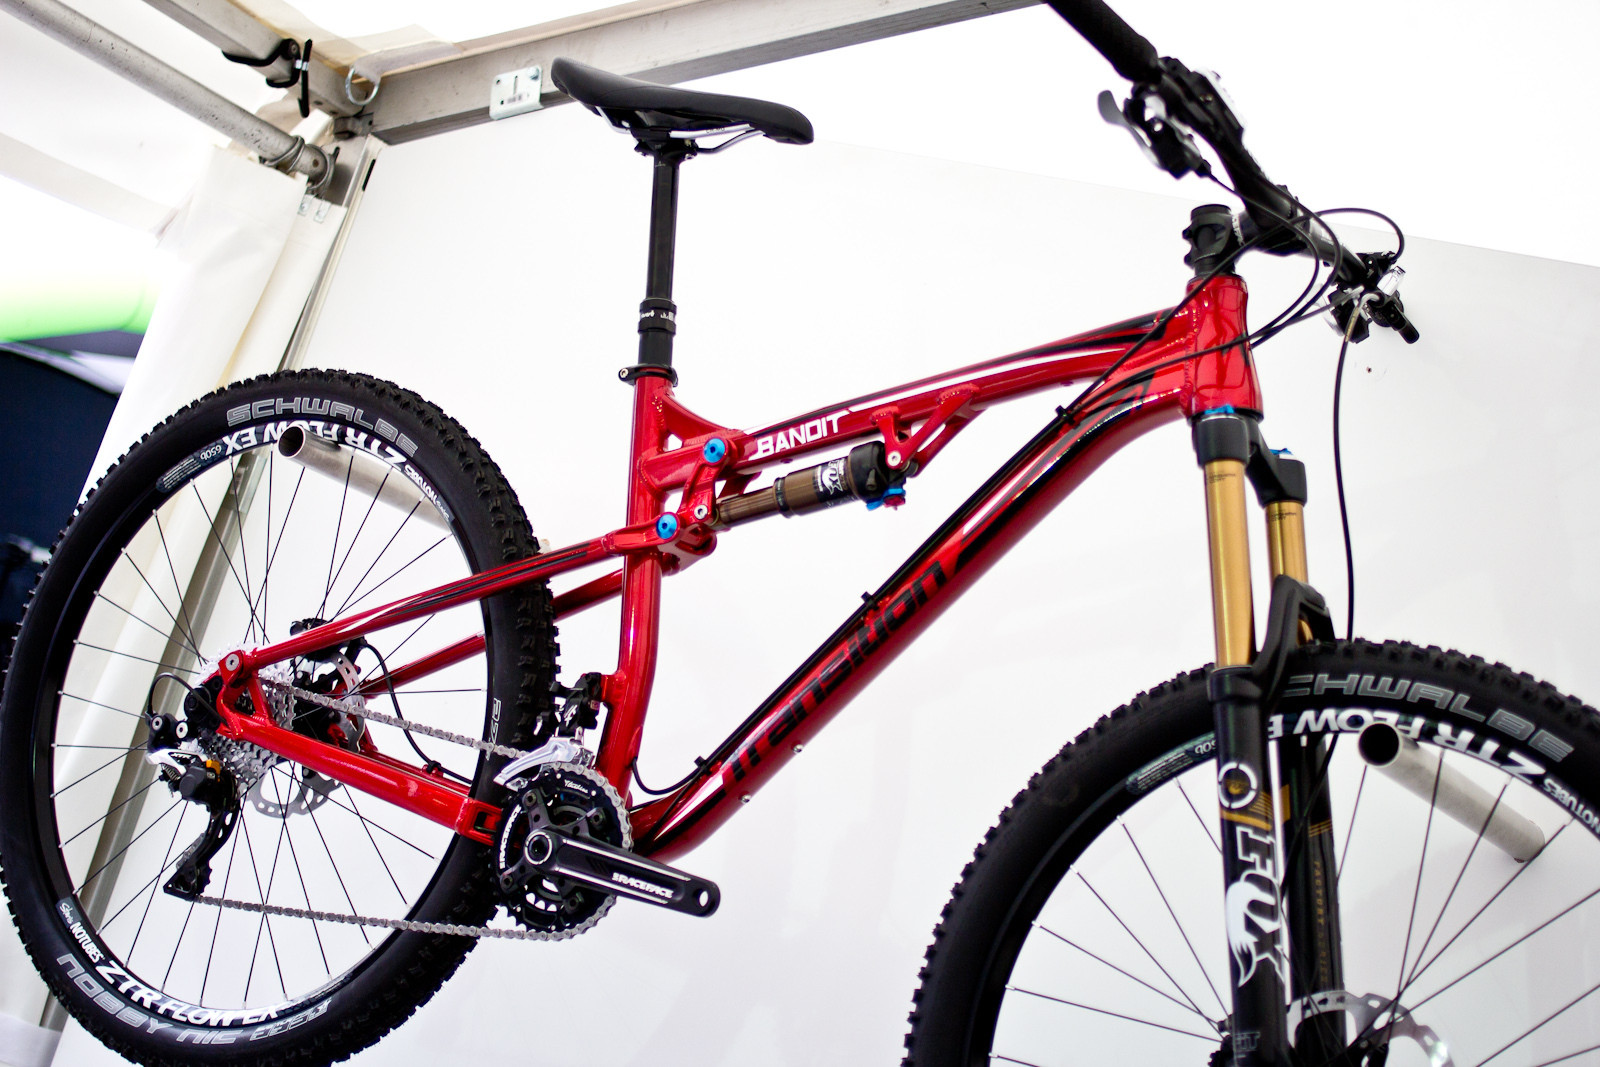 2014 Transition Bandit 27 5 - 2014 Trail, All-Mountain & Enduro Bikes at Eurobike 2013 - Mountain Biking Pictures - Vital MTB